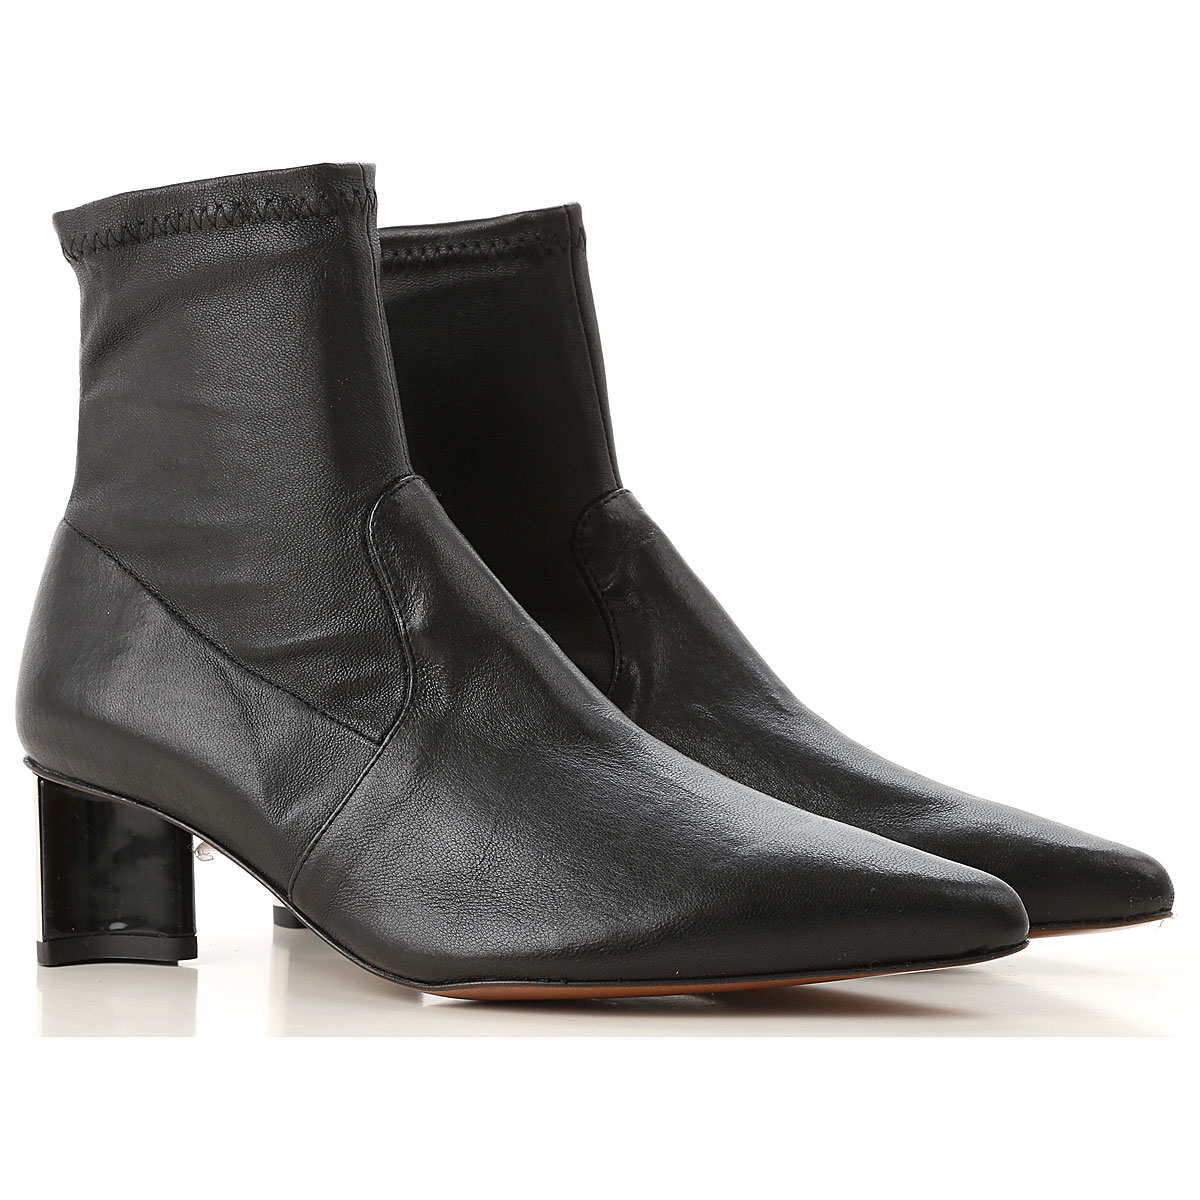 Image of Clergerie Paris Boots for Women, Booties, Black, Leather, 2017, 10 6 6.5 7 8 8.5 9